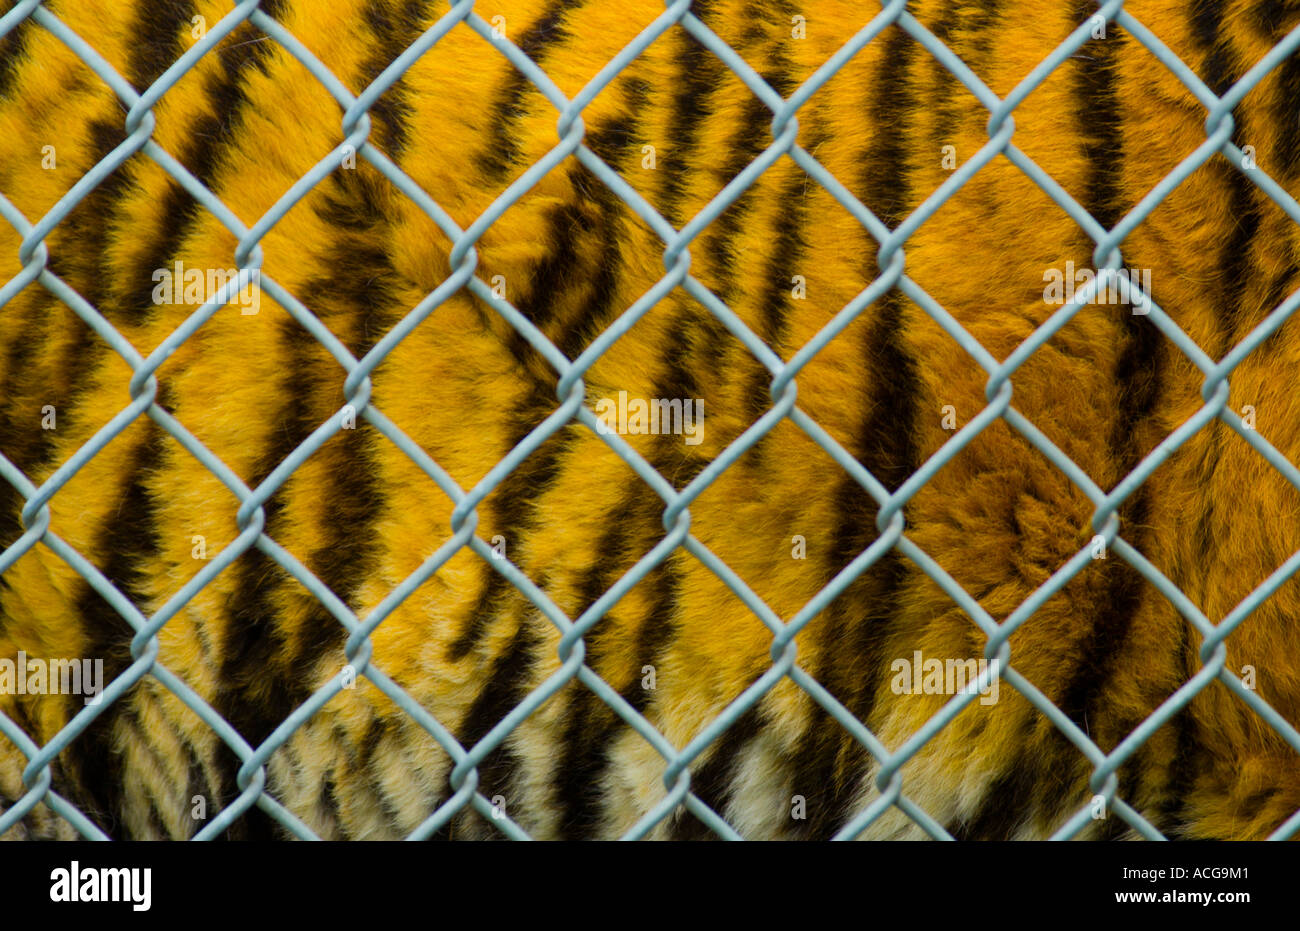 captive tiger behind chainlink fence - Stock Image